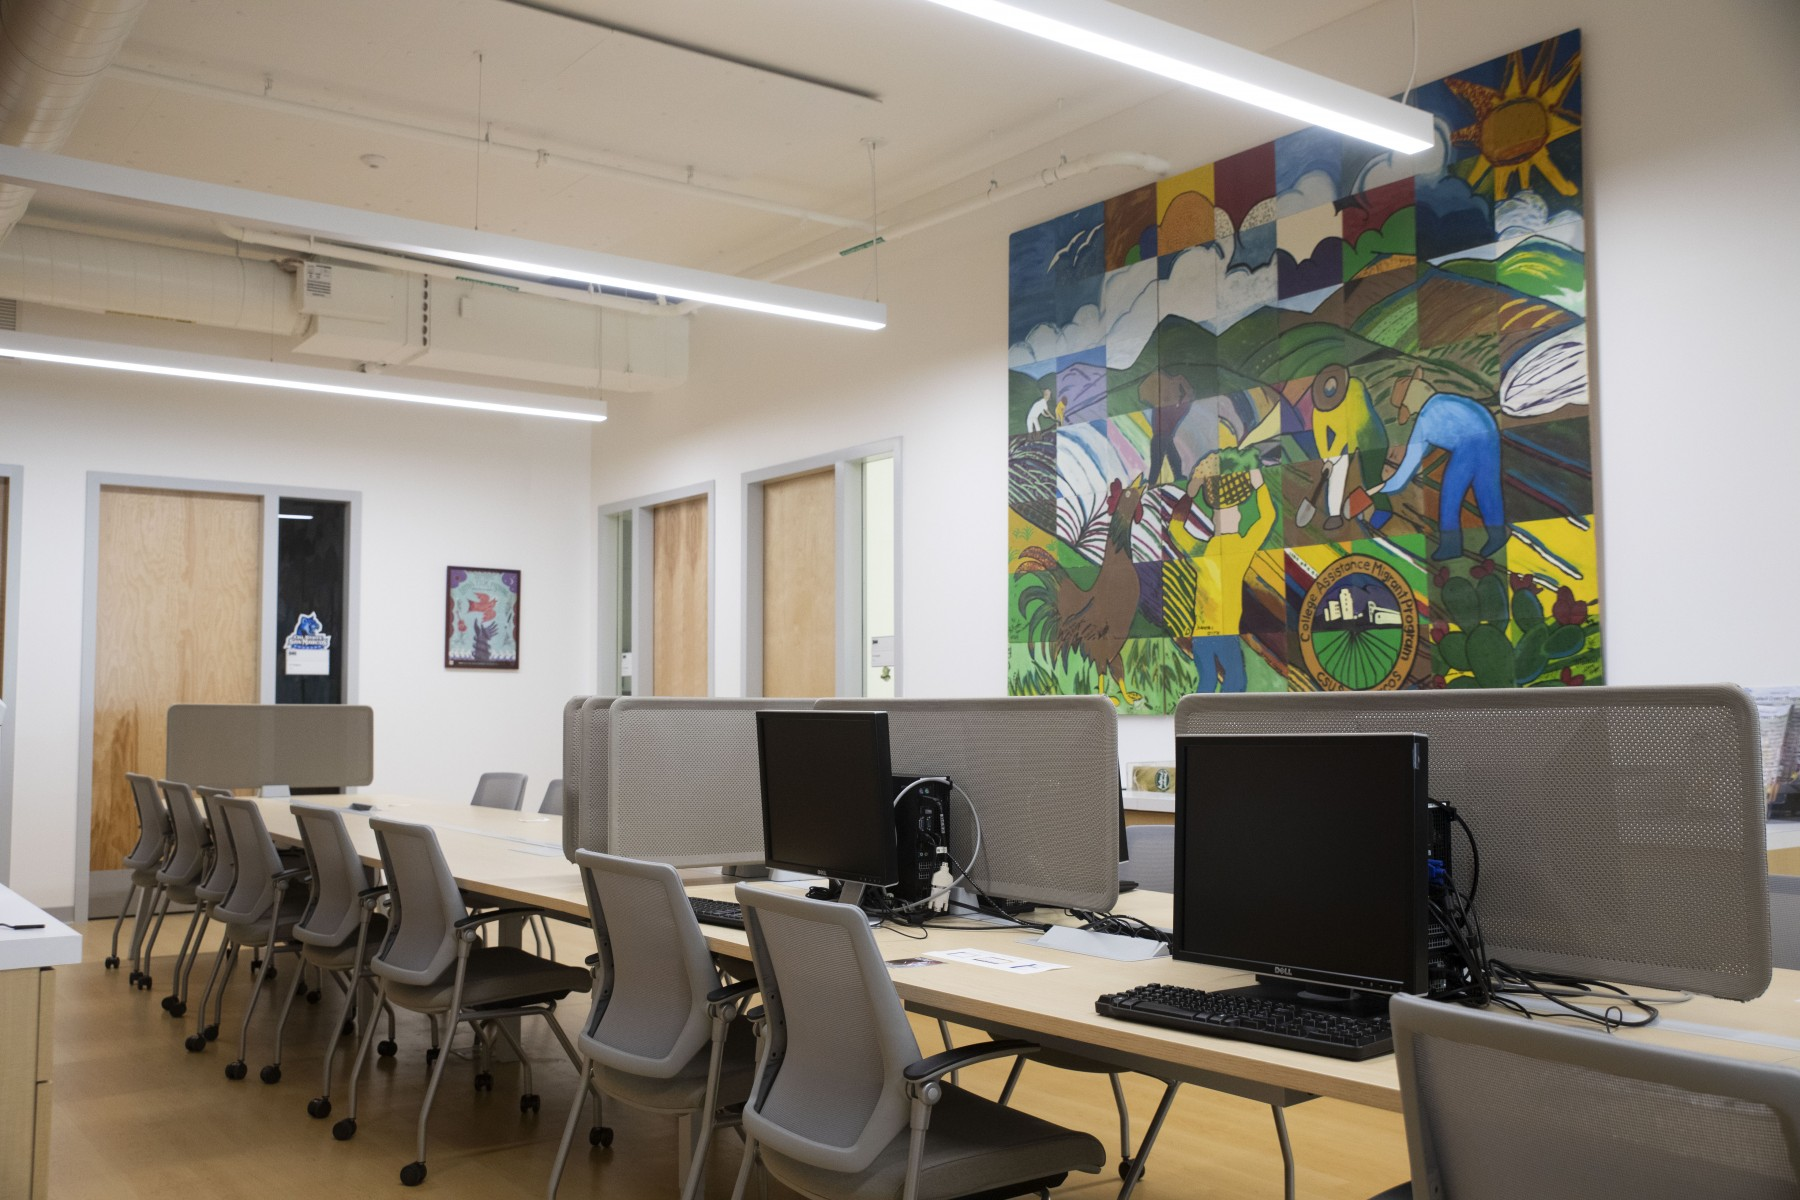 The CAMP office in the Extended Learning building is adorned with a colorful mural that pays tribute to farmworkers in California. Photo by Andrew Reed